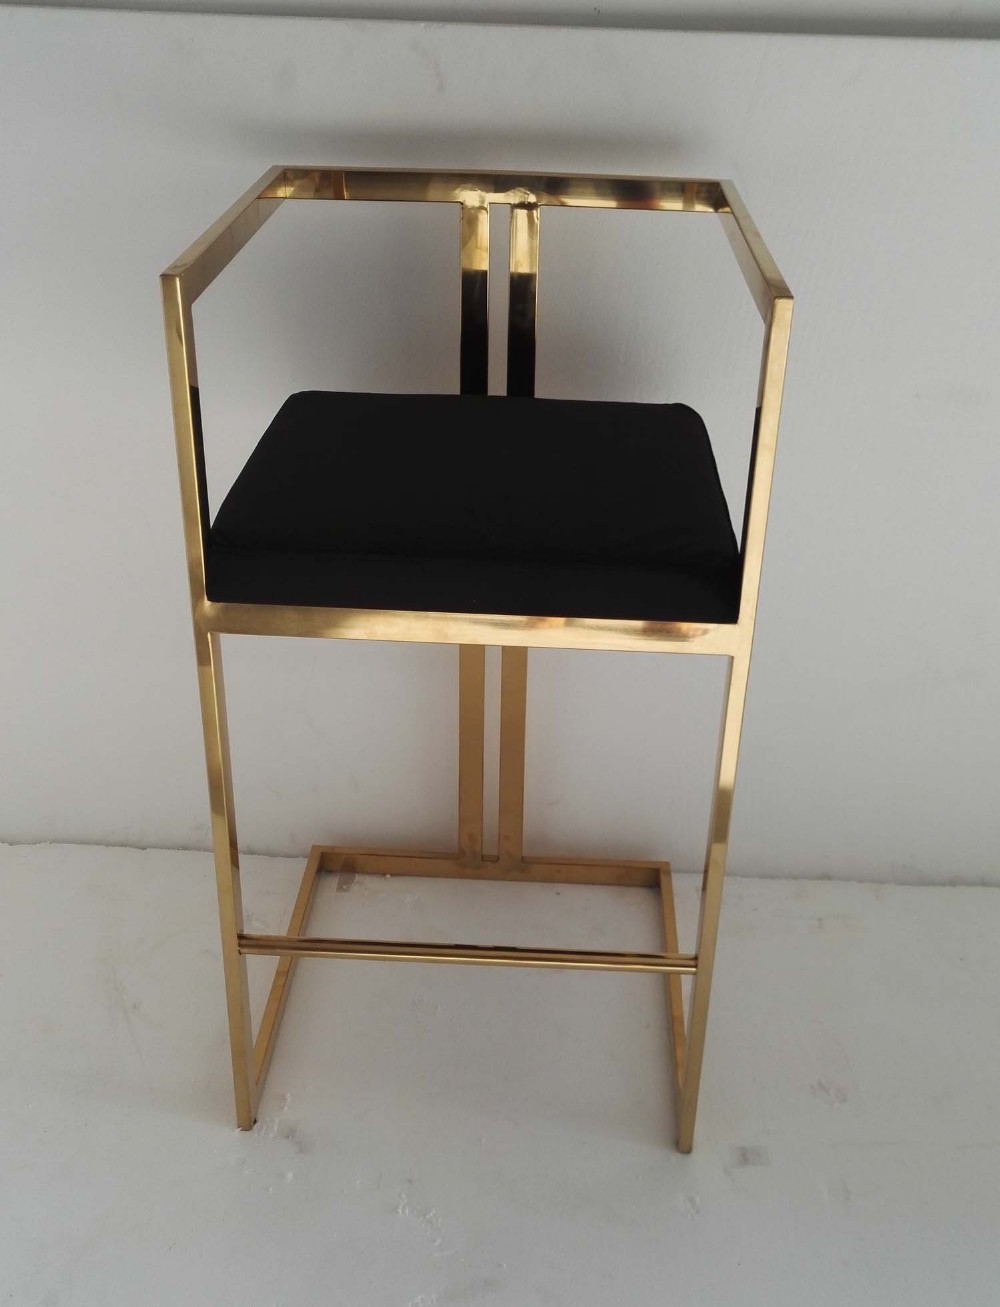 S S Bar Stool In Gold Plating Buy Stainless Steel